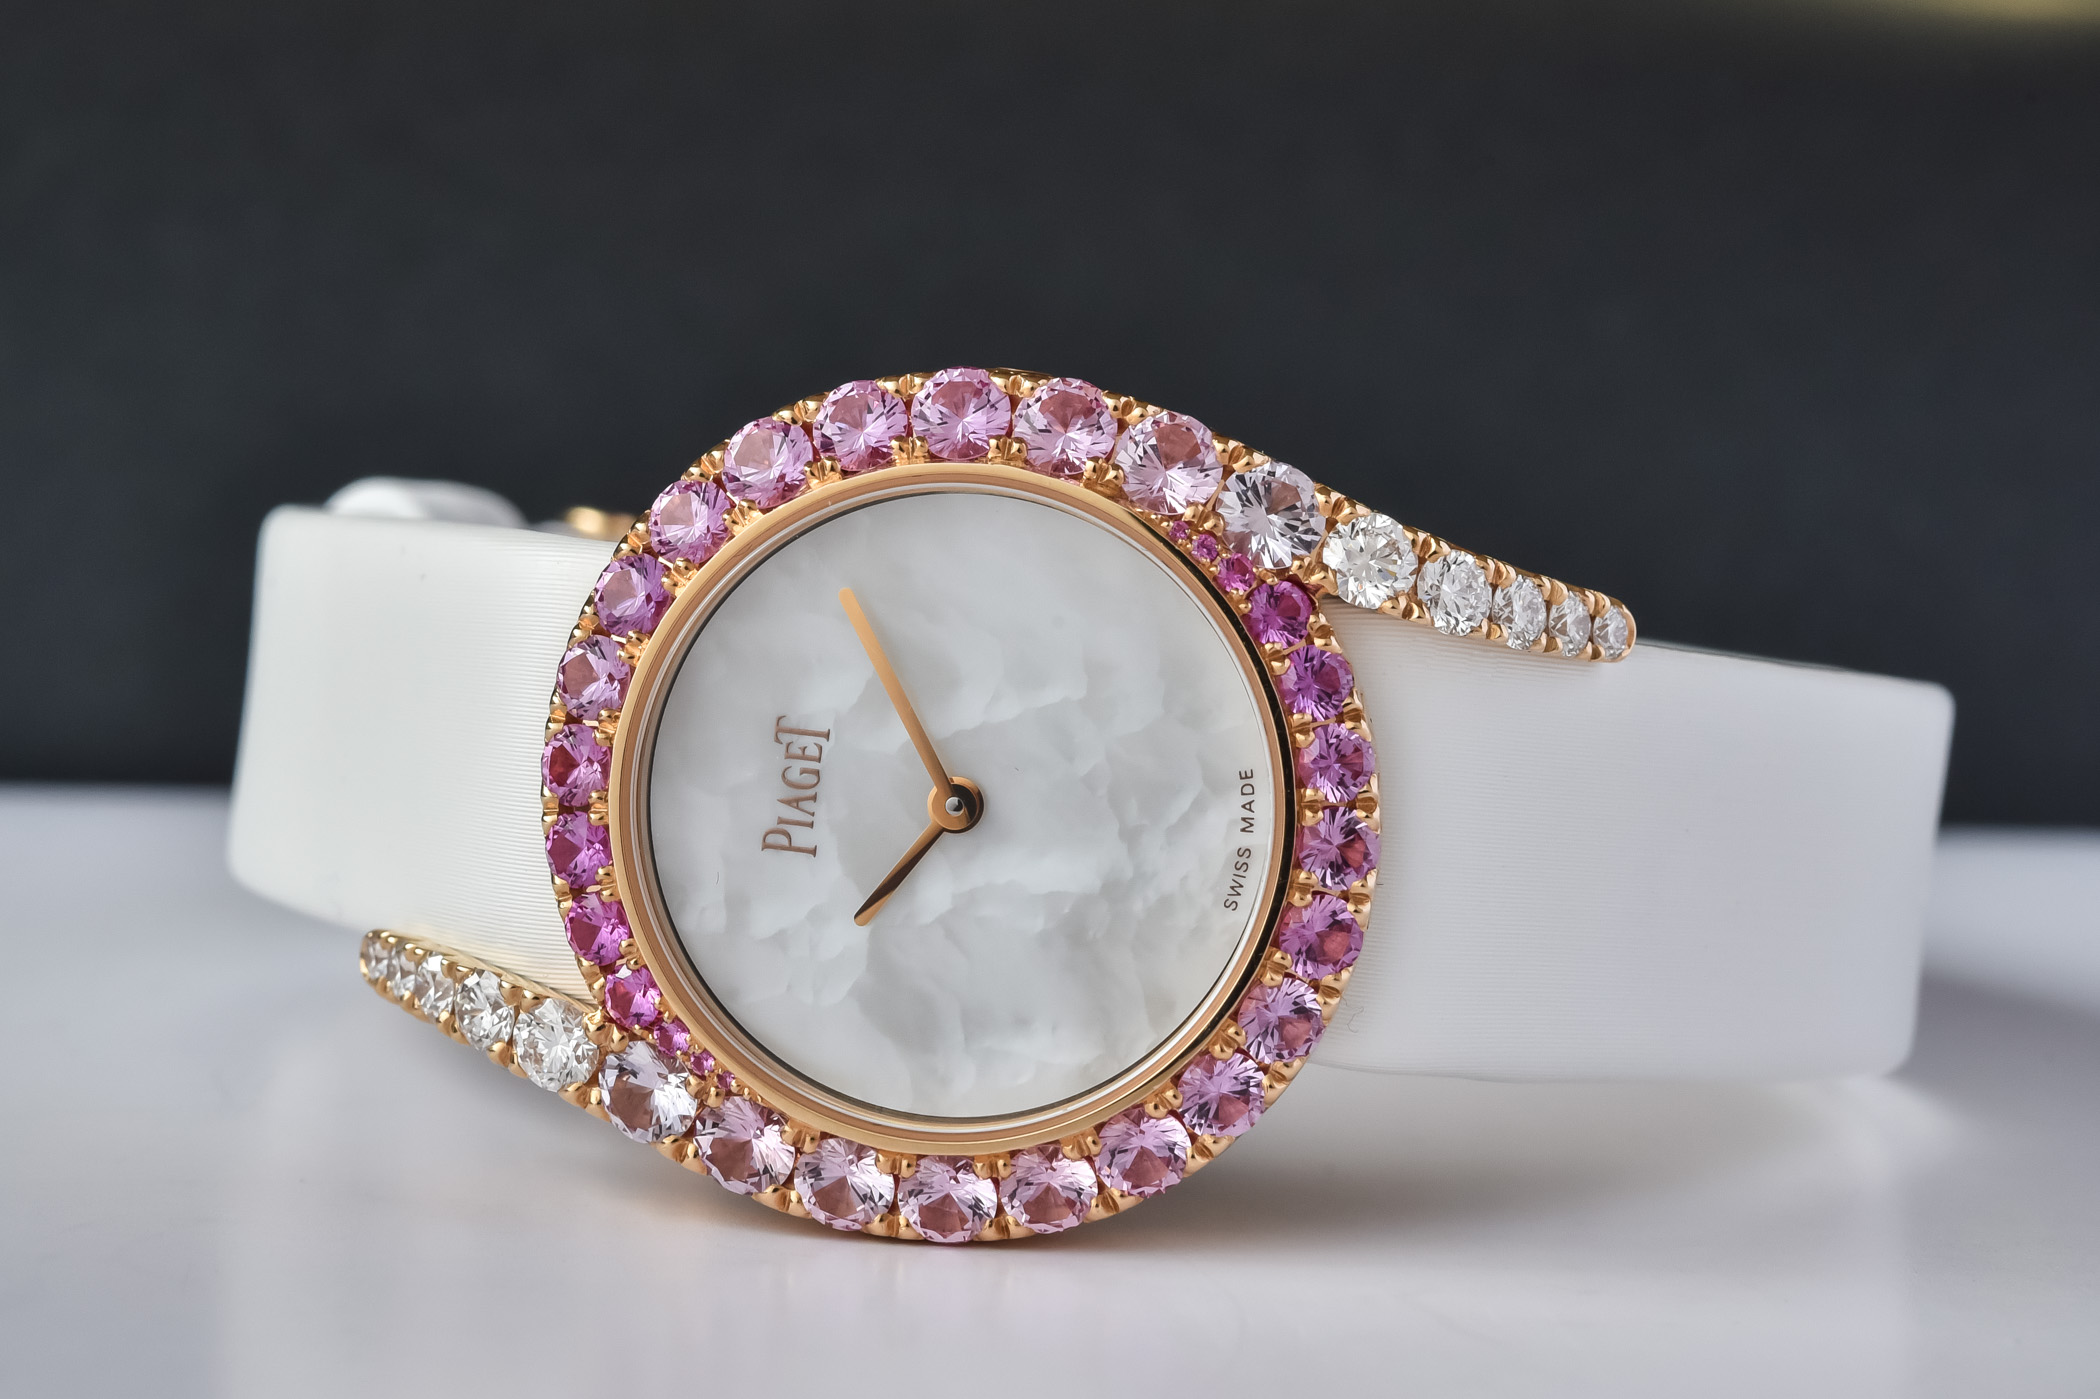 2021 Piaget Limelight Gala Collection - 1